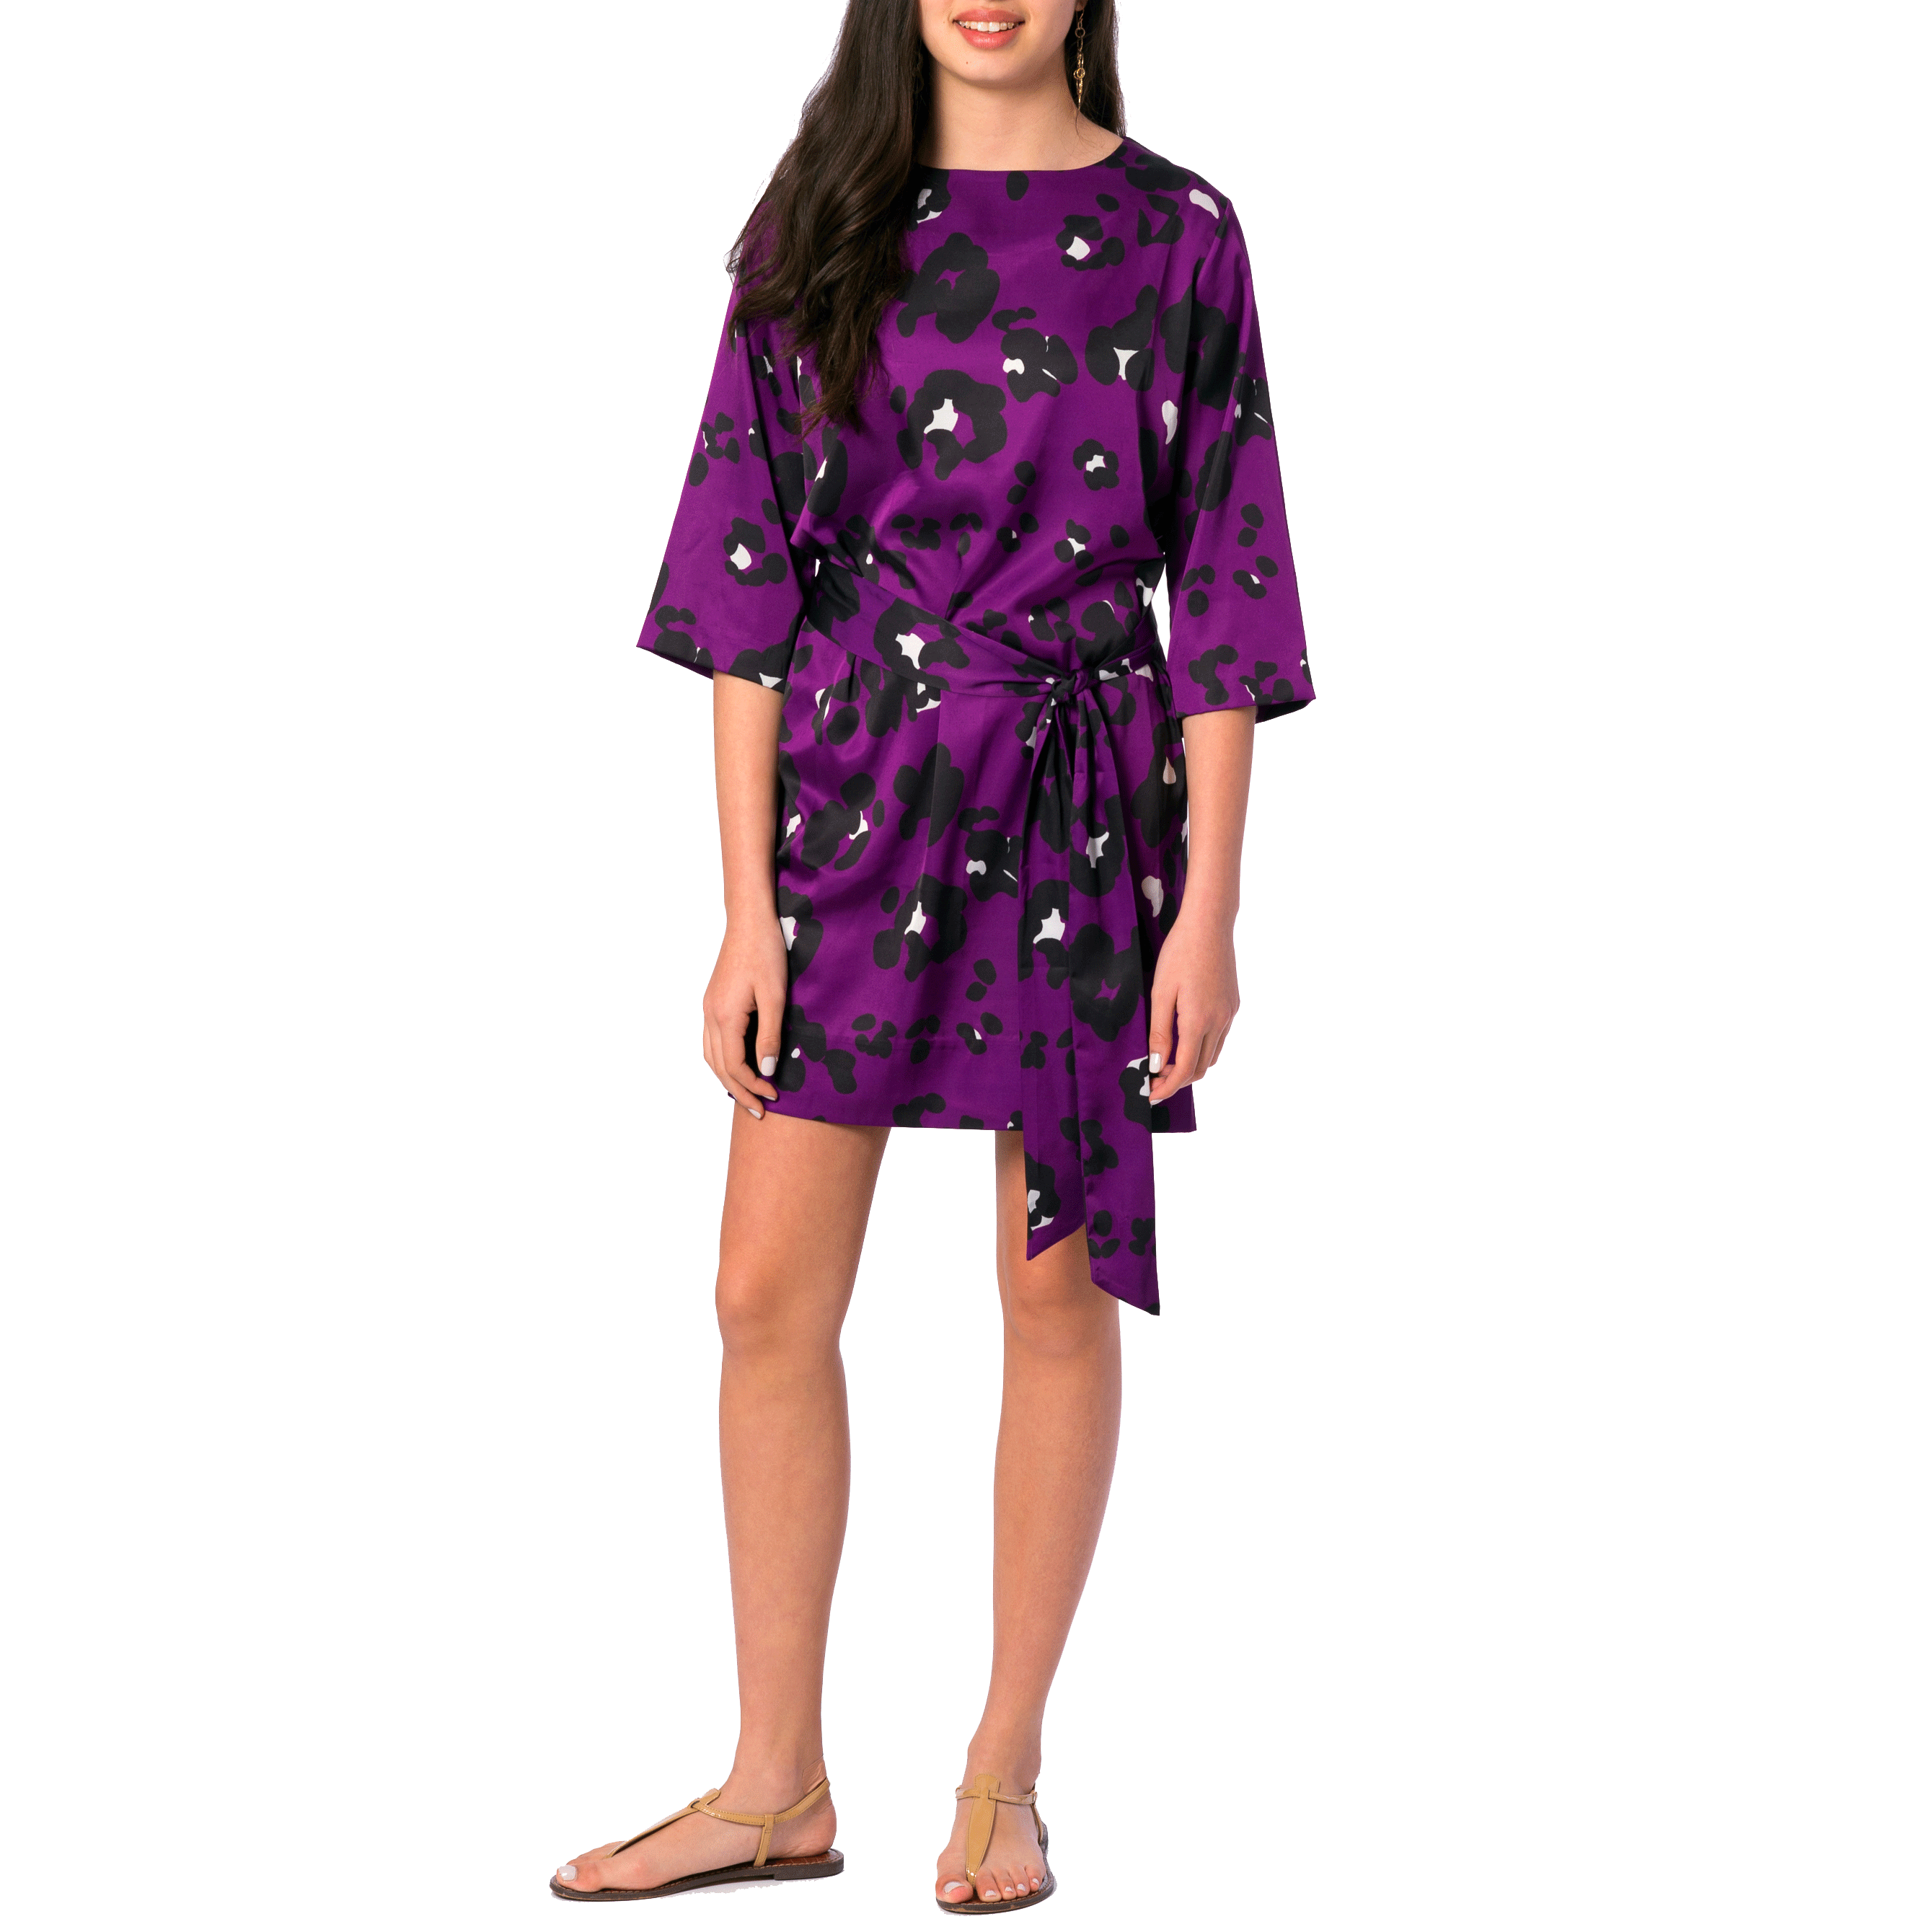 Jackie 3/4 Sleeve Dress in Purple Spot - Elizabeth Ackerman New York